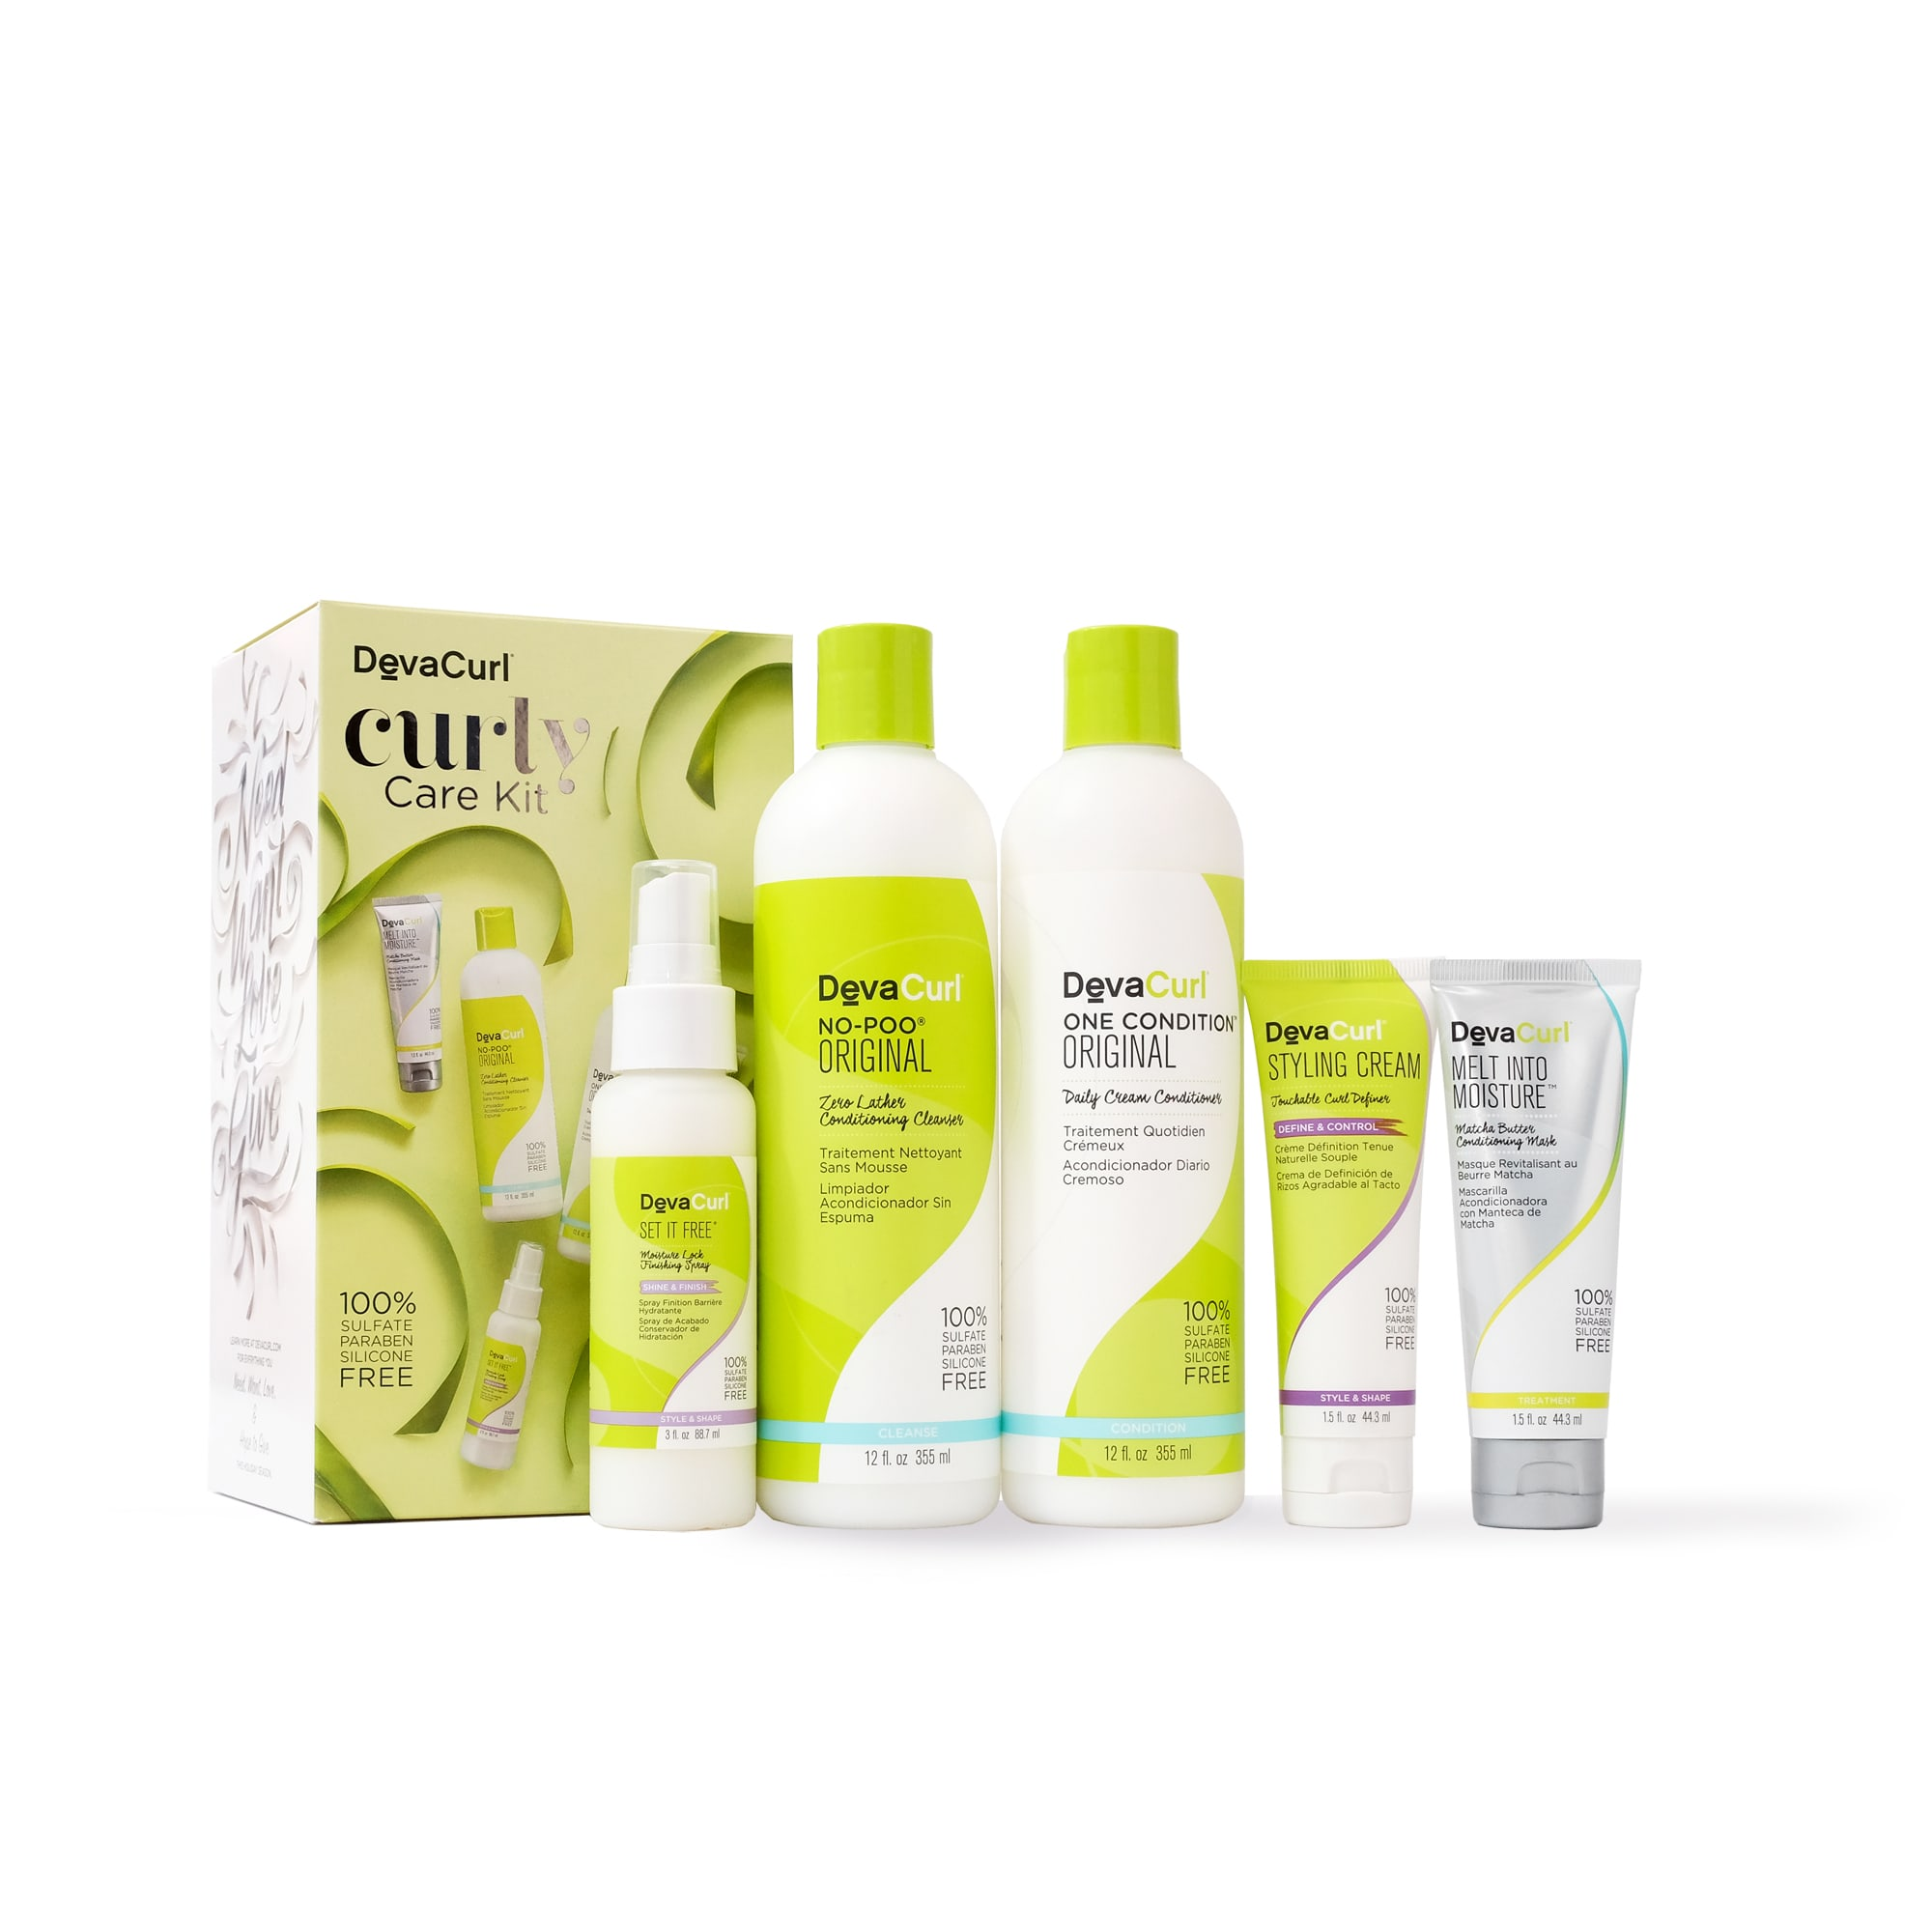 curly care kit box with bottles outside box